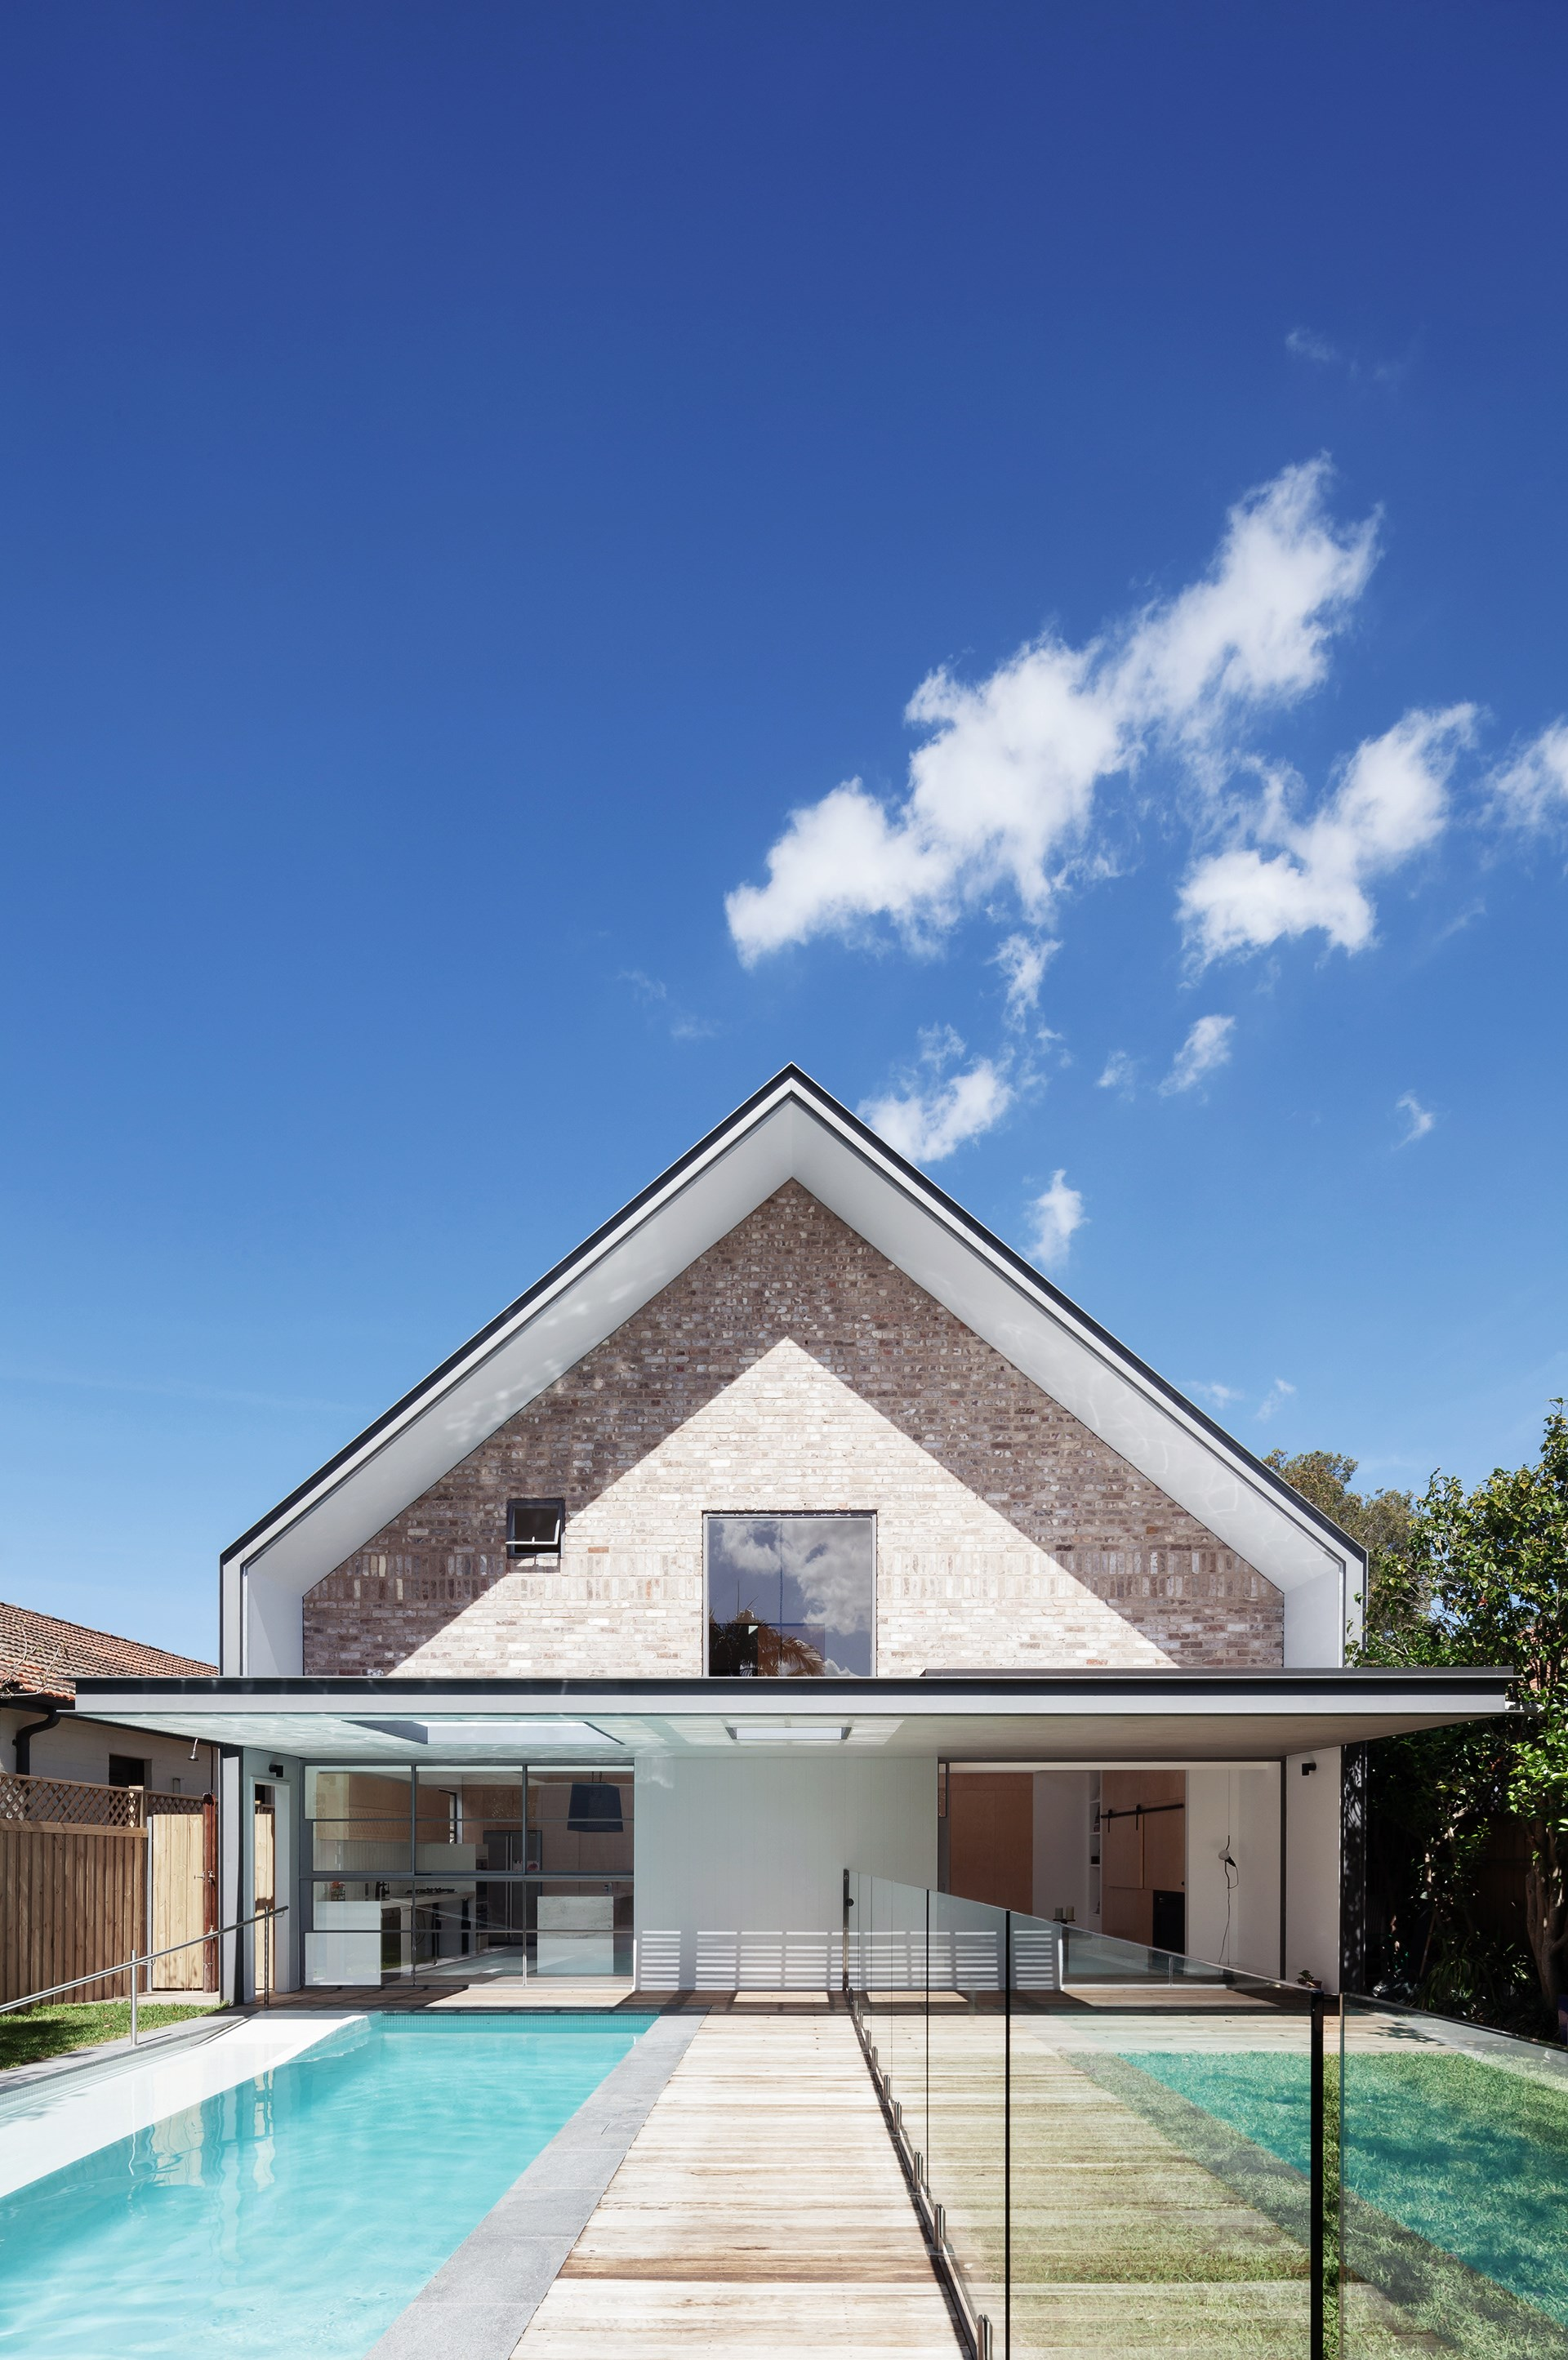 """*Maher House* designed by [Tribe Studio Architects](http://www.tribestudio.com.au/